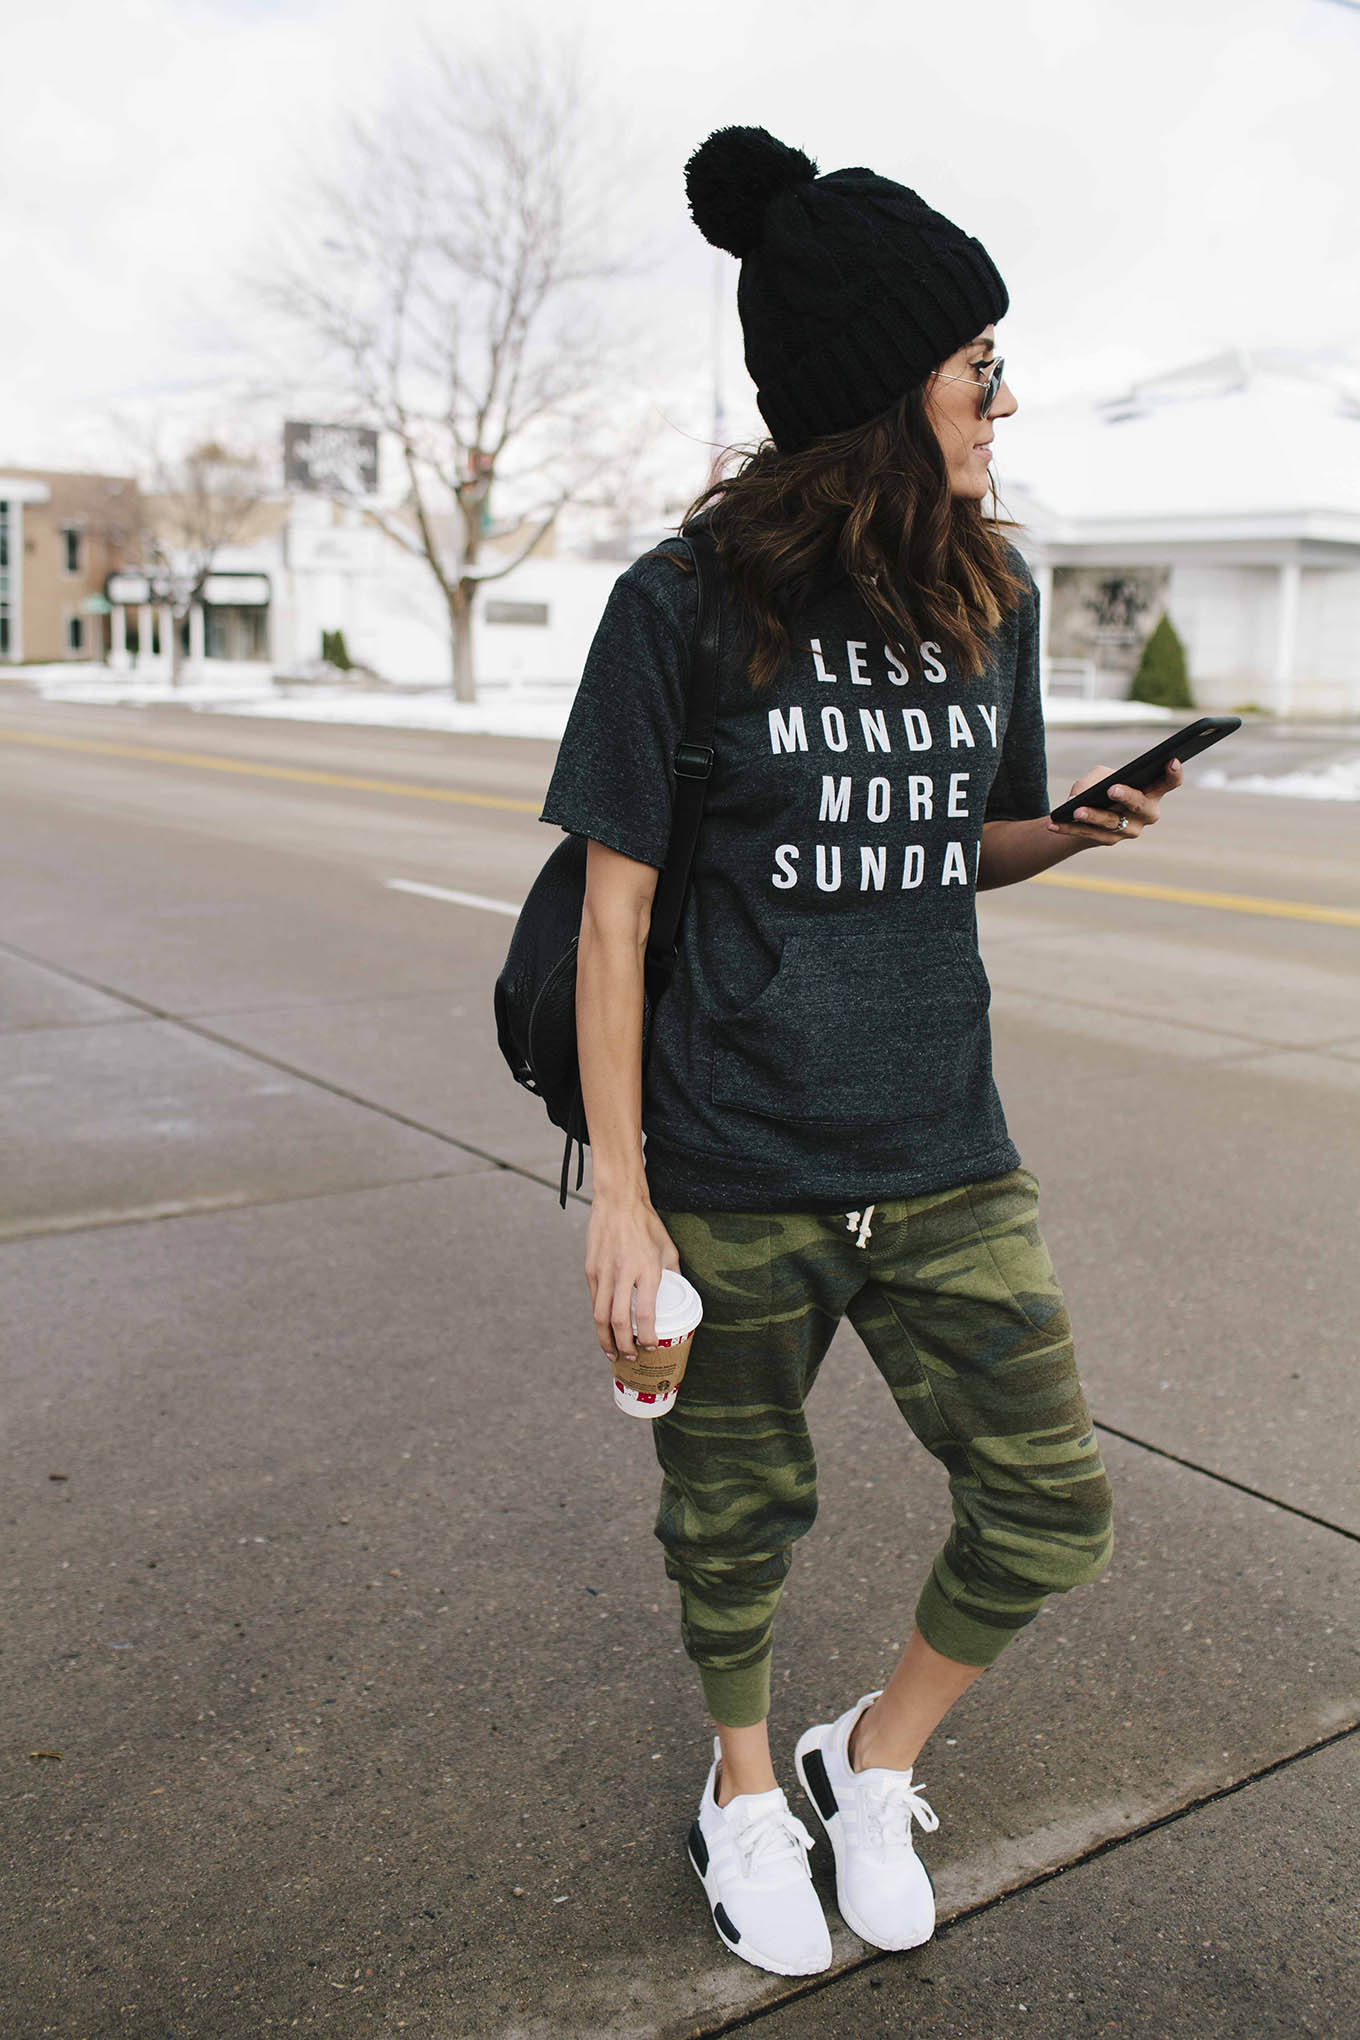 Less monday sweatshirt